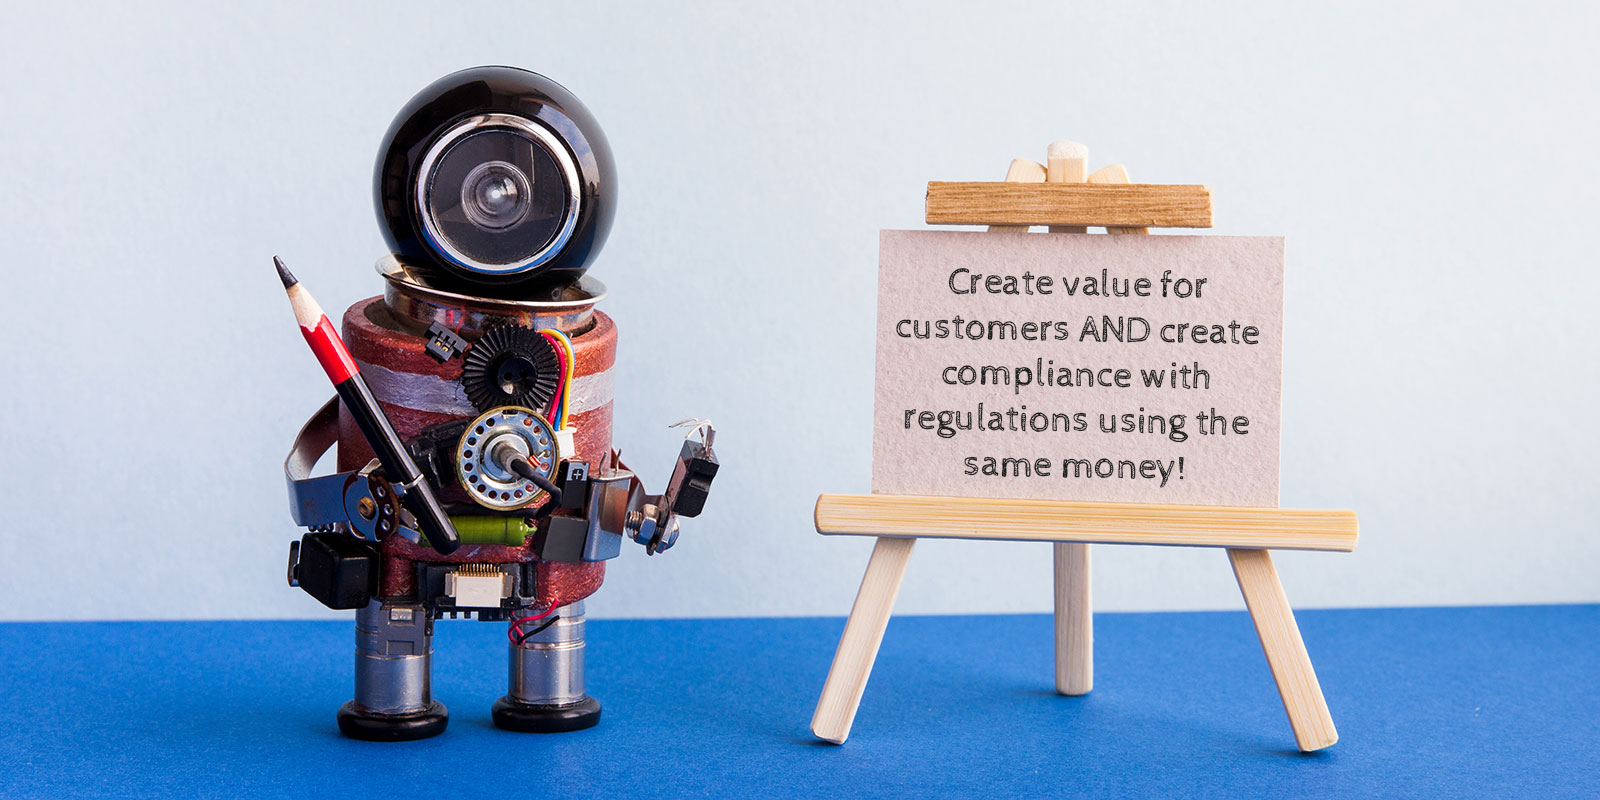 The regulatory strategy series, Part 1: Create value for customers AND create compliance with regulations using the same money!